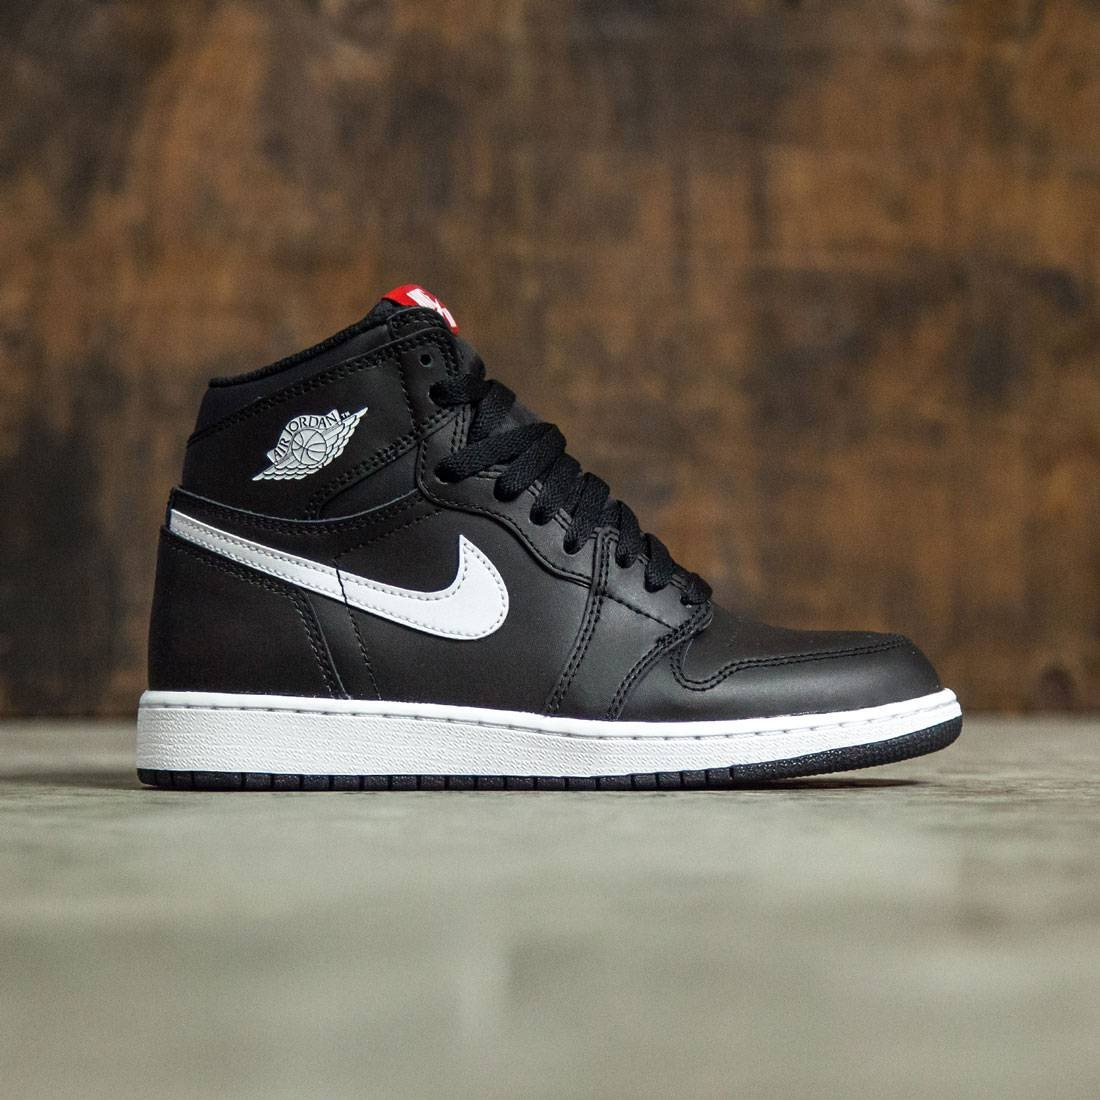 abbc9364857a Jordan Big Kids Air Jordan 1 Retro High OG (GS) (black   white-black-university  red)